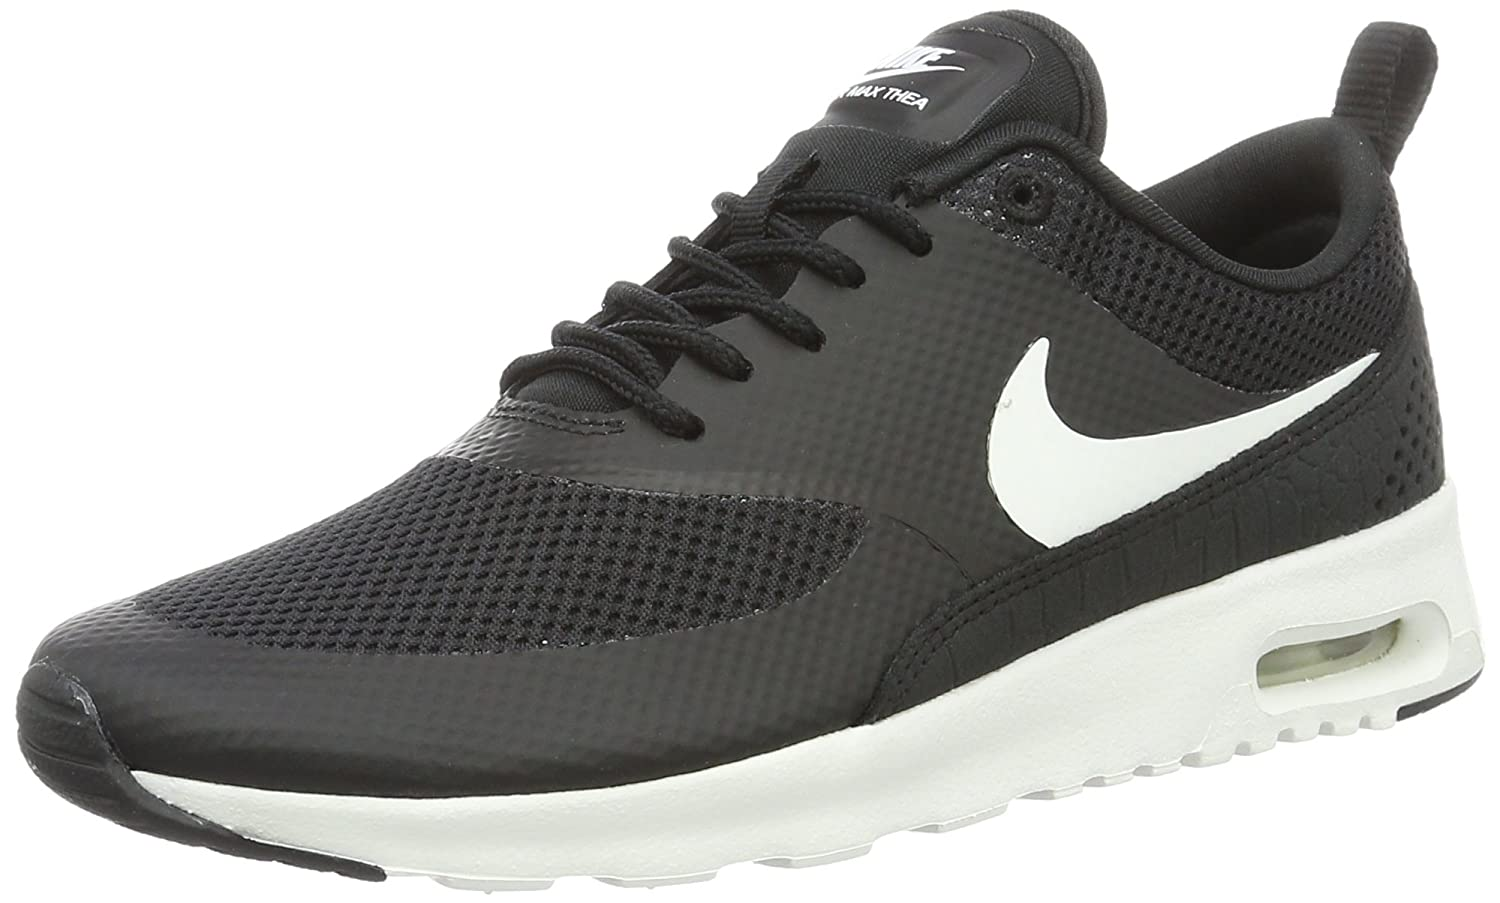 competitive price 6158d f6f7d Nike Women s Air Max Thea Low-Top Sneakers, Black